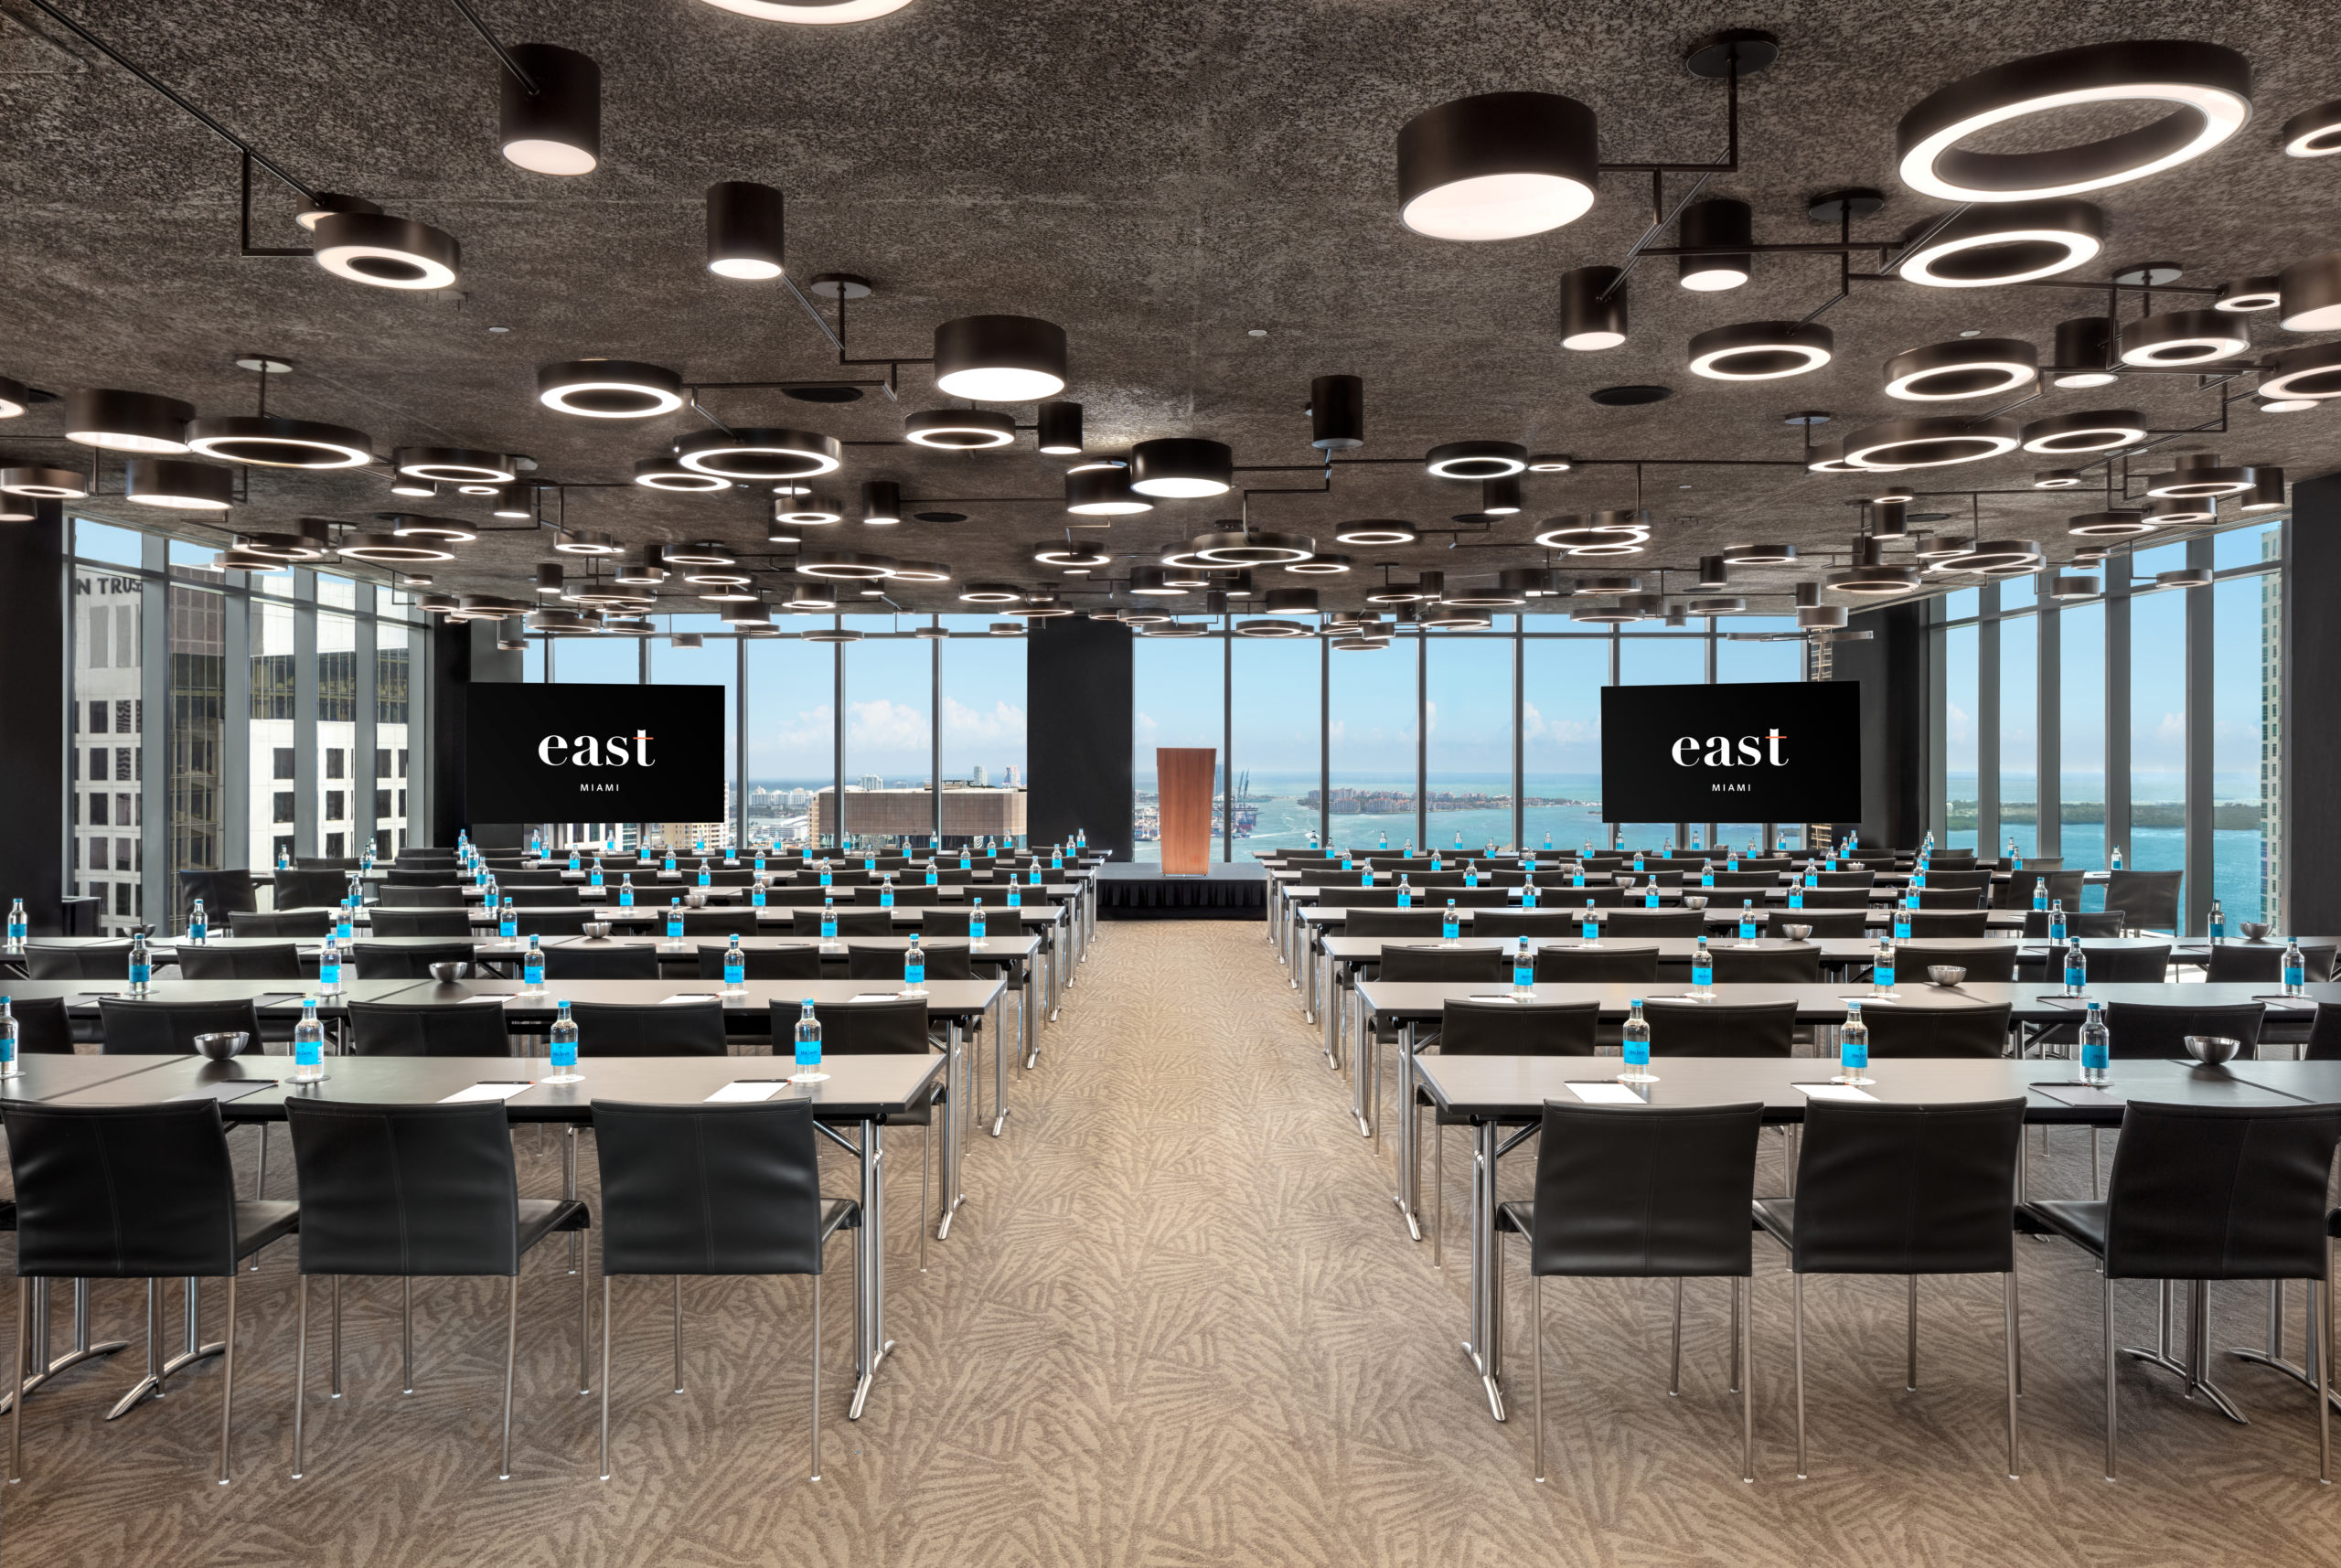 Hotel Meeting Spaces Photography Miami Florida by Swiss Photographer Adrian Kilchherr, Approved Photographer Hilton, HyattUSA, Europe, Wordwide